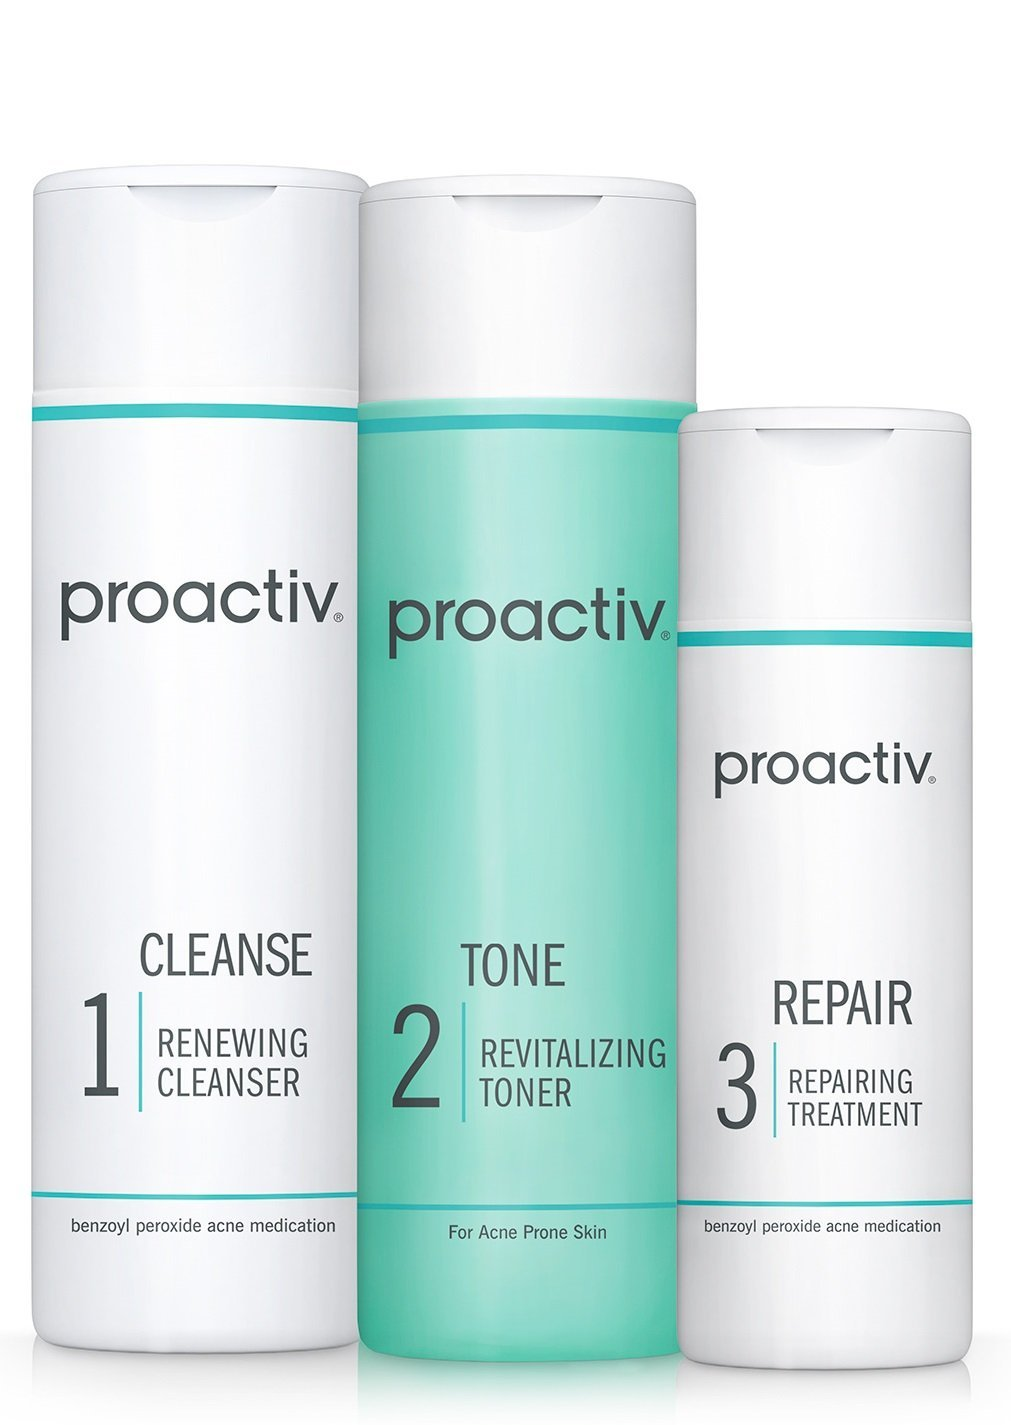 Top 10 Best Selling Acne Treatment Products From Amazon